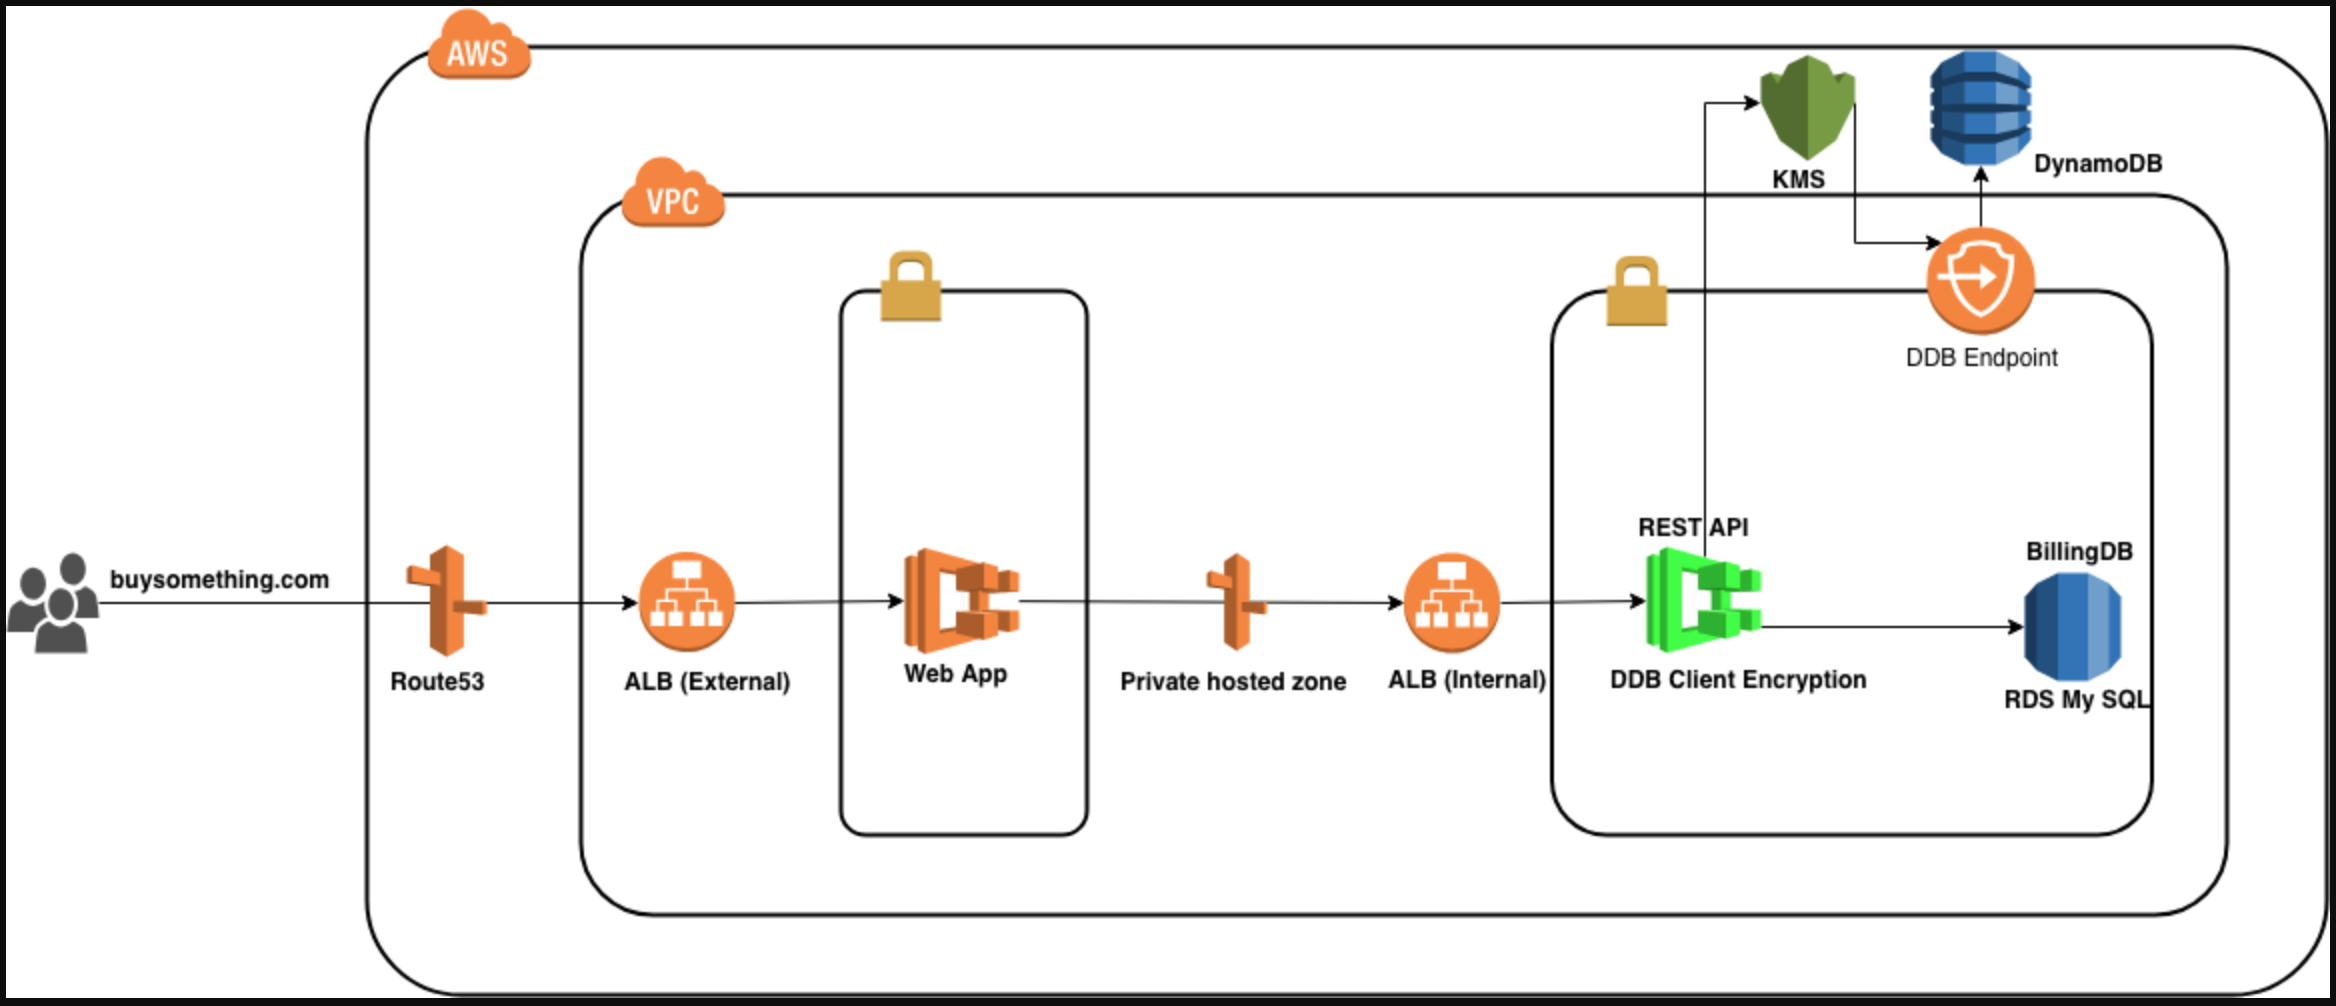 How to protect Primary Account Number (PAN) data in AWS